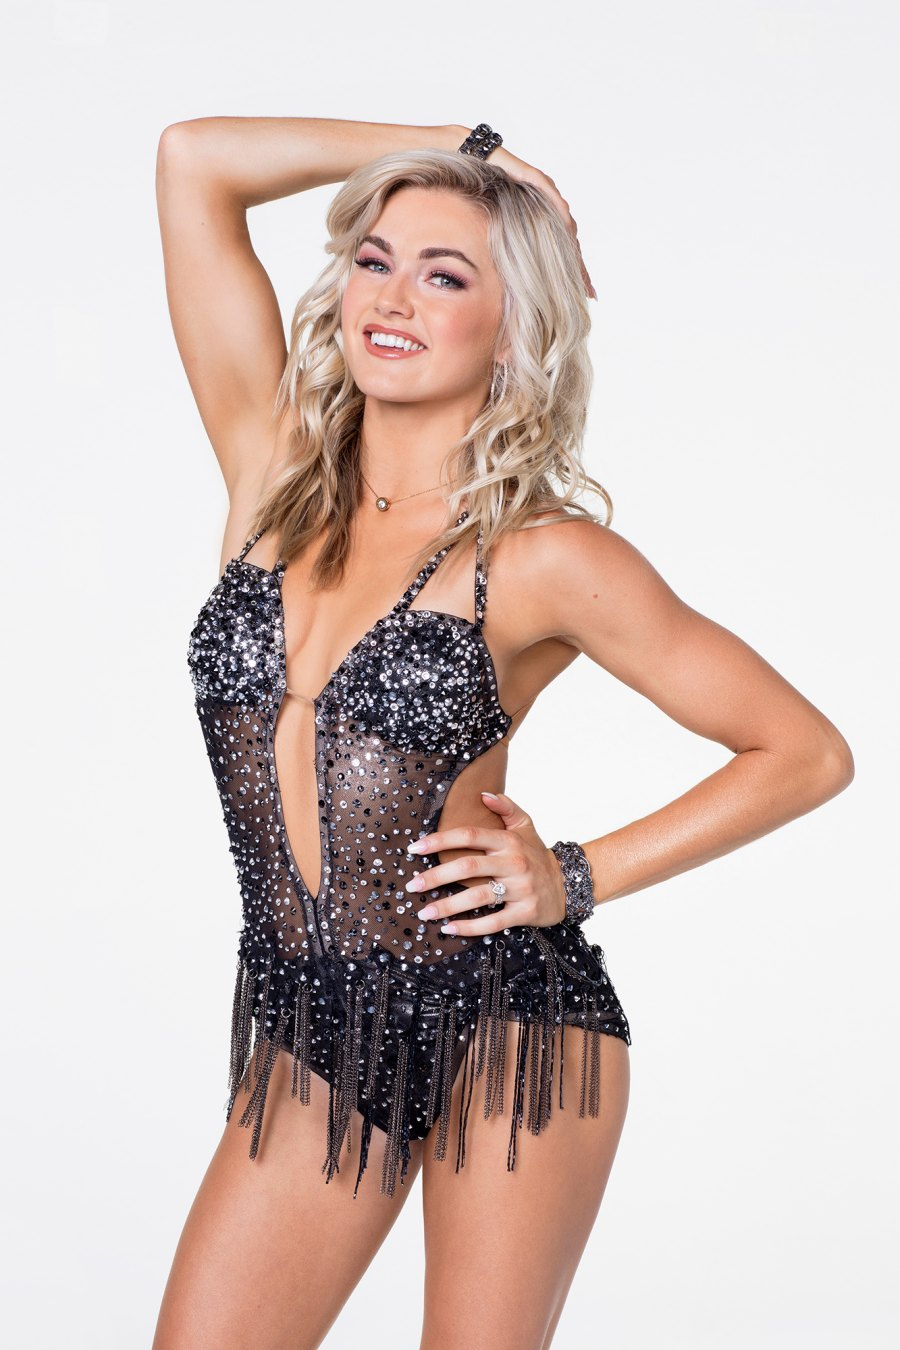 'Dancing With the Stars' Pros for Season 30 Announced: Who's Back and Who's Missing?